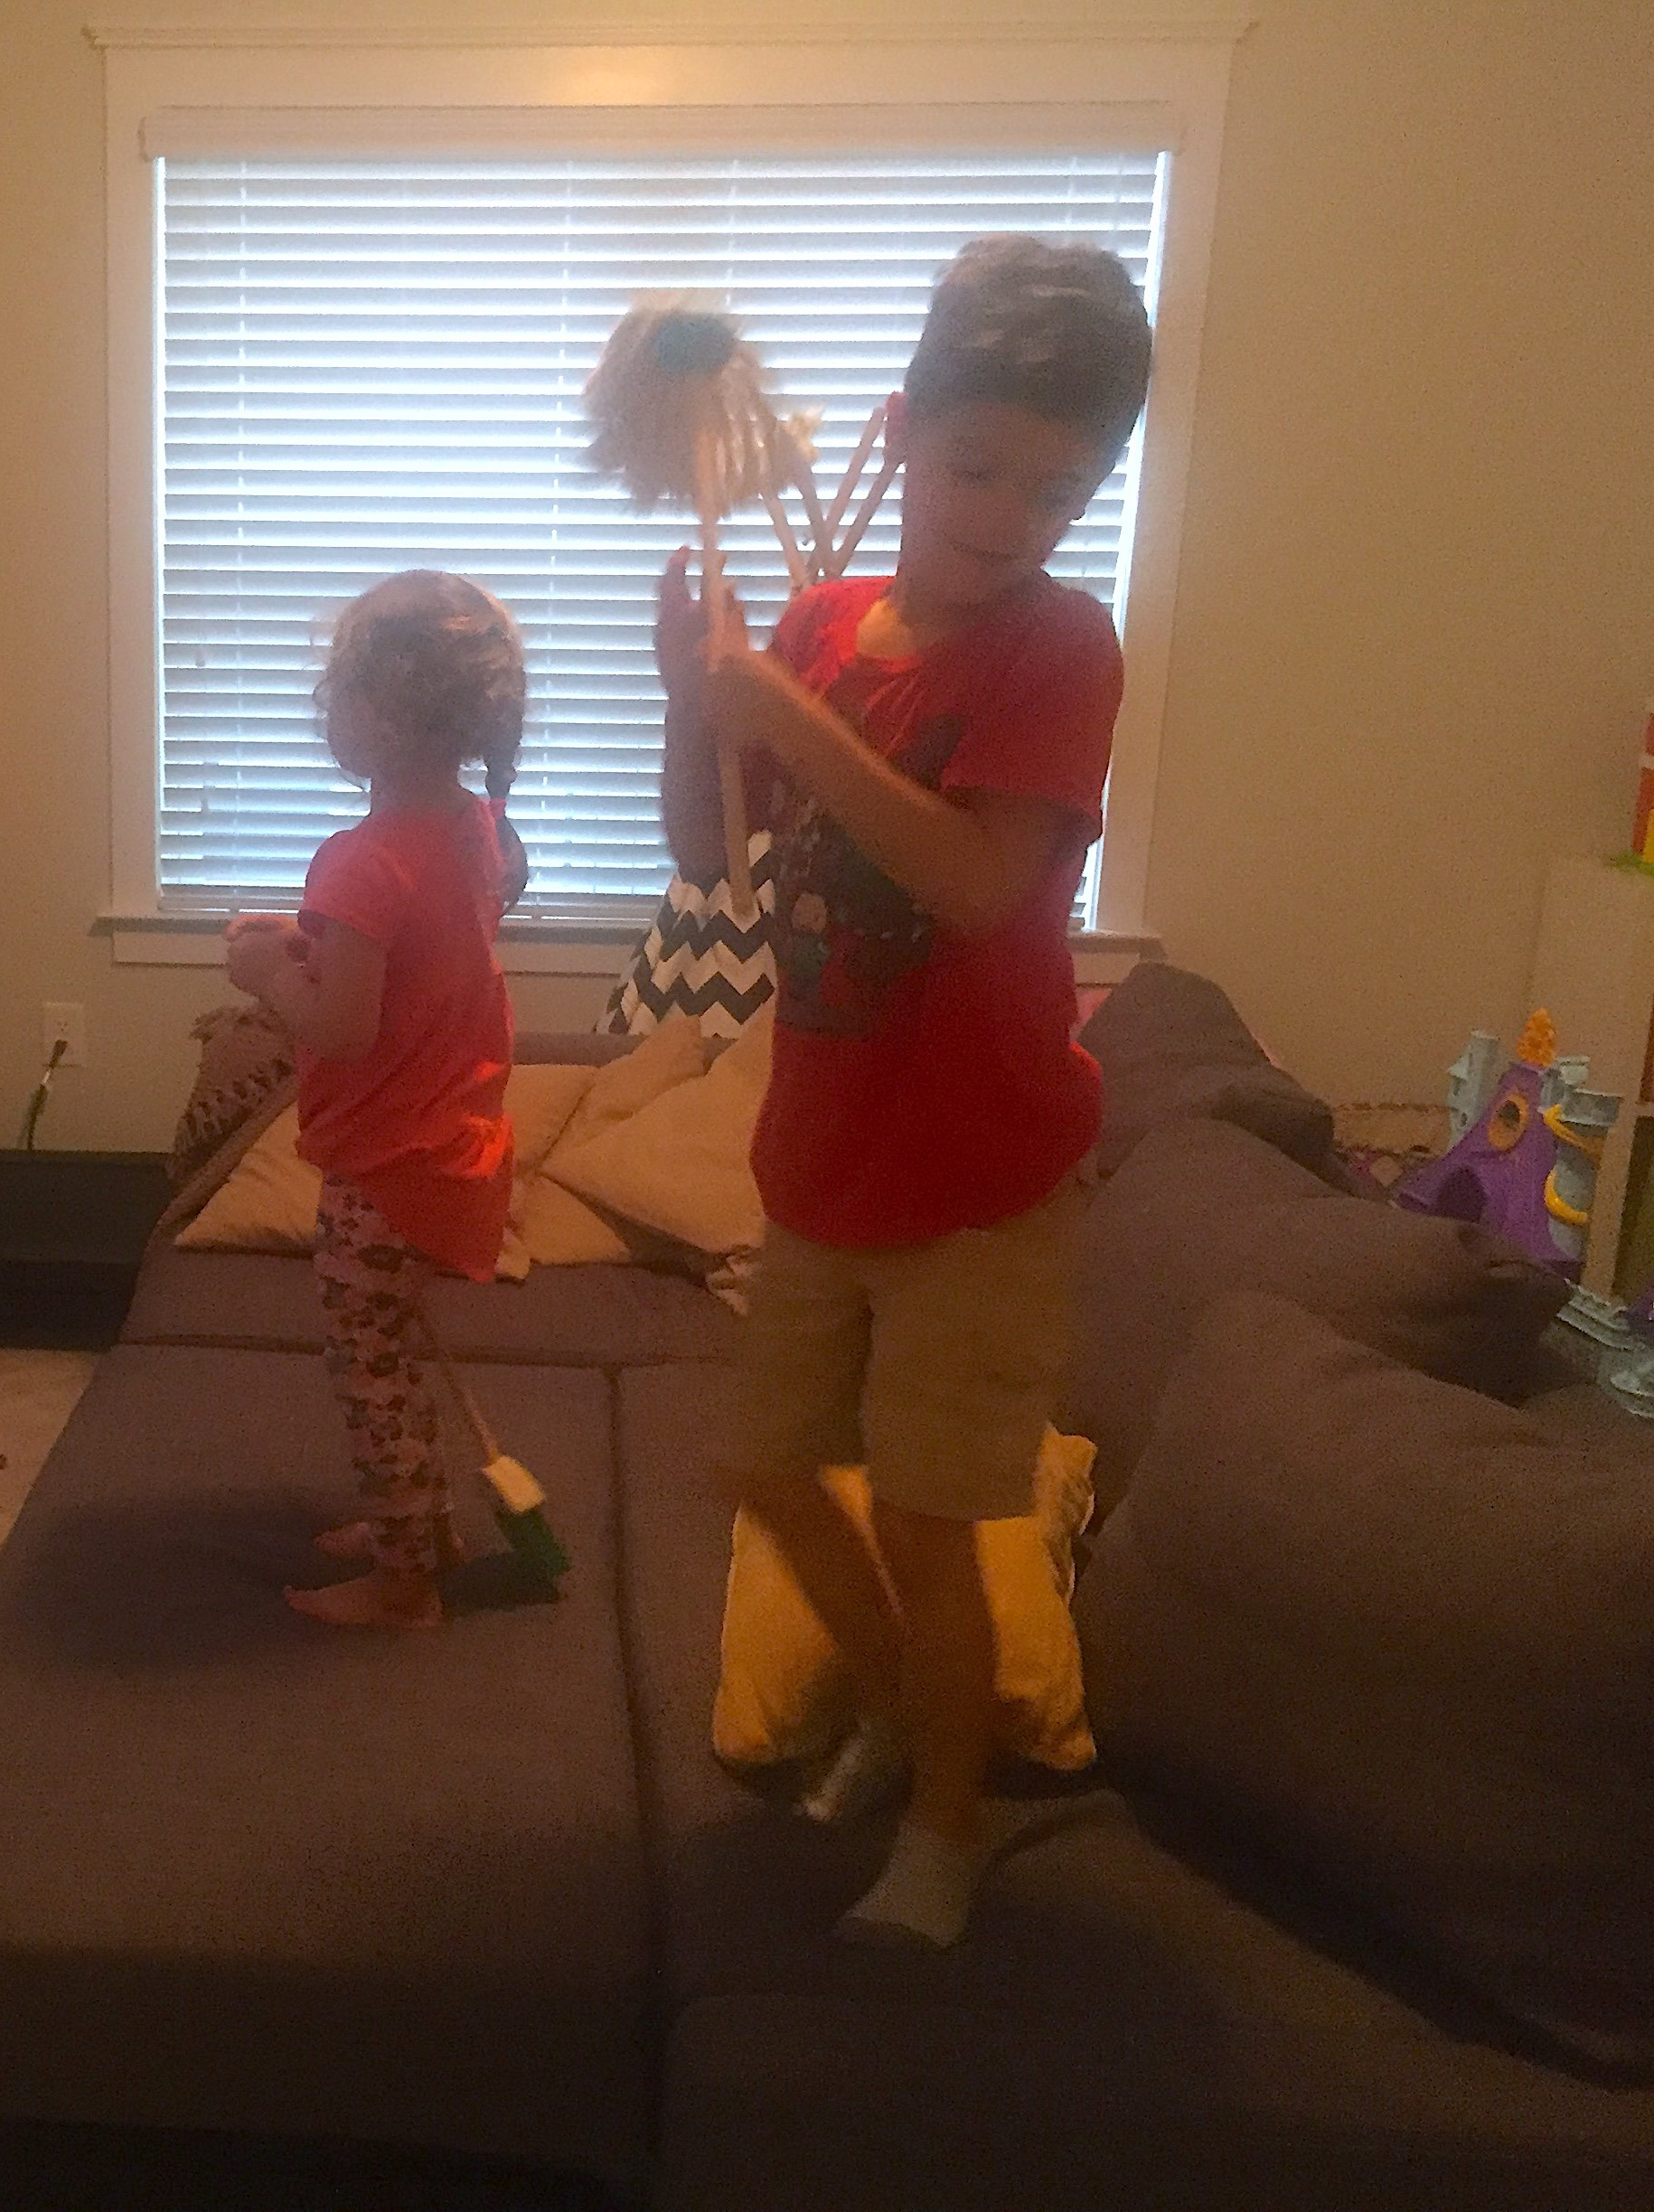 Playing with his cousin May Net Worth Update www.thethreeyearexperiment.com